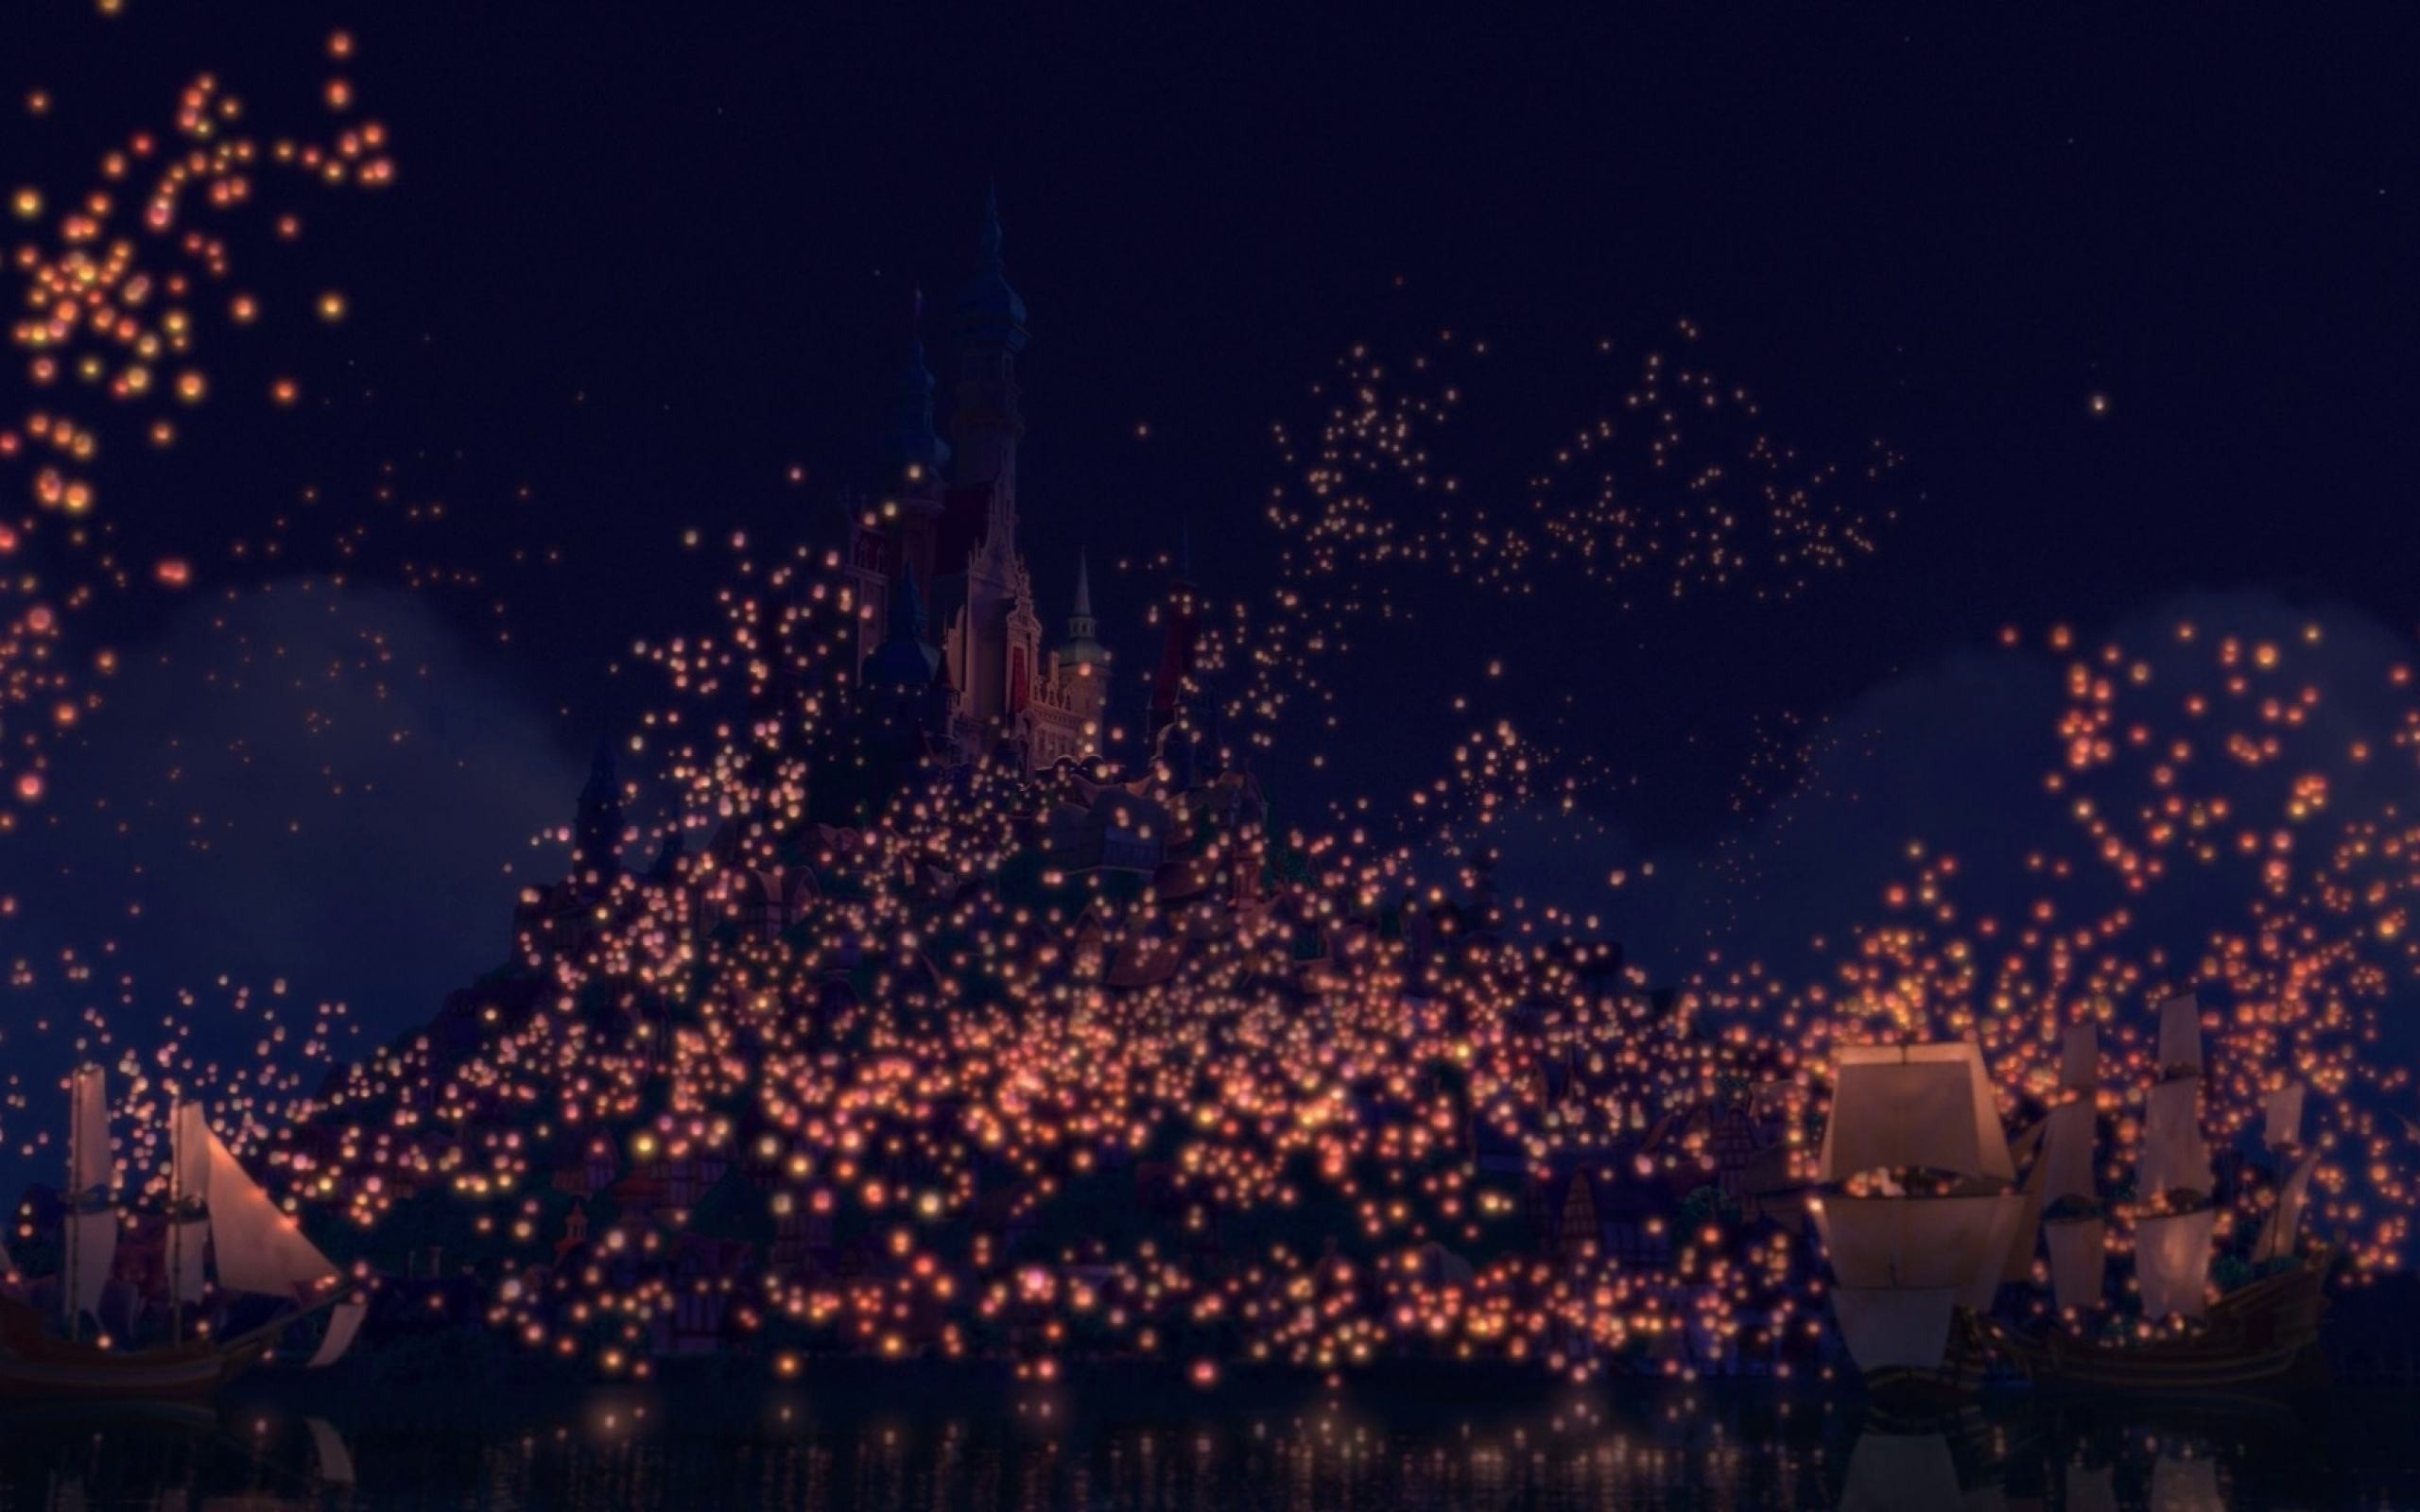 Sky Lanterns Wallpaper Iphone Tangled Floating Lanterns Desktop Wallpaper 74 43 Images